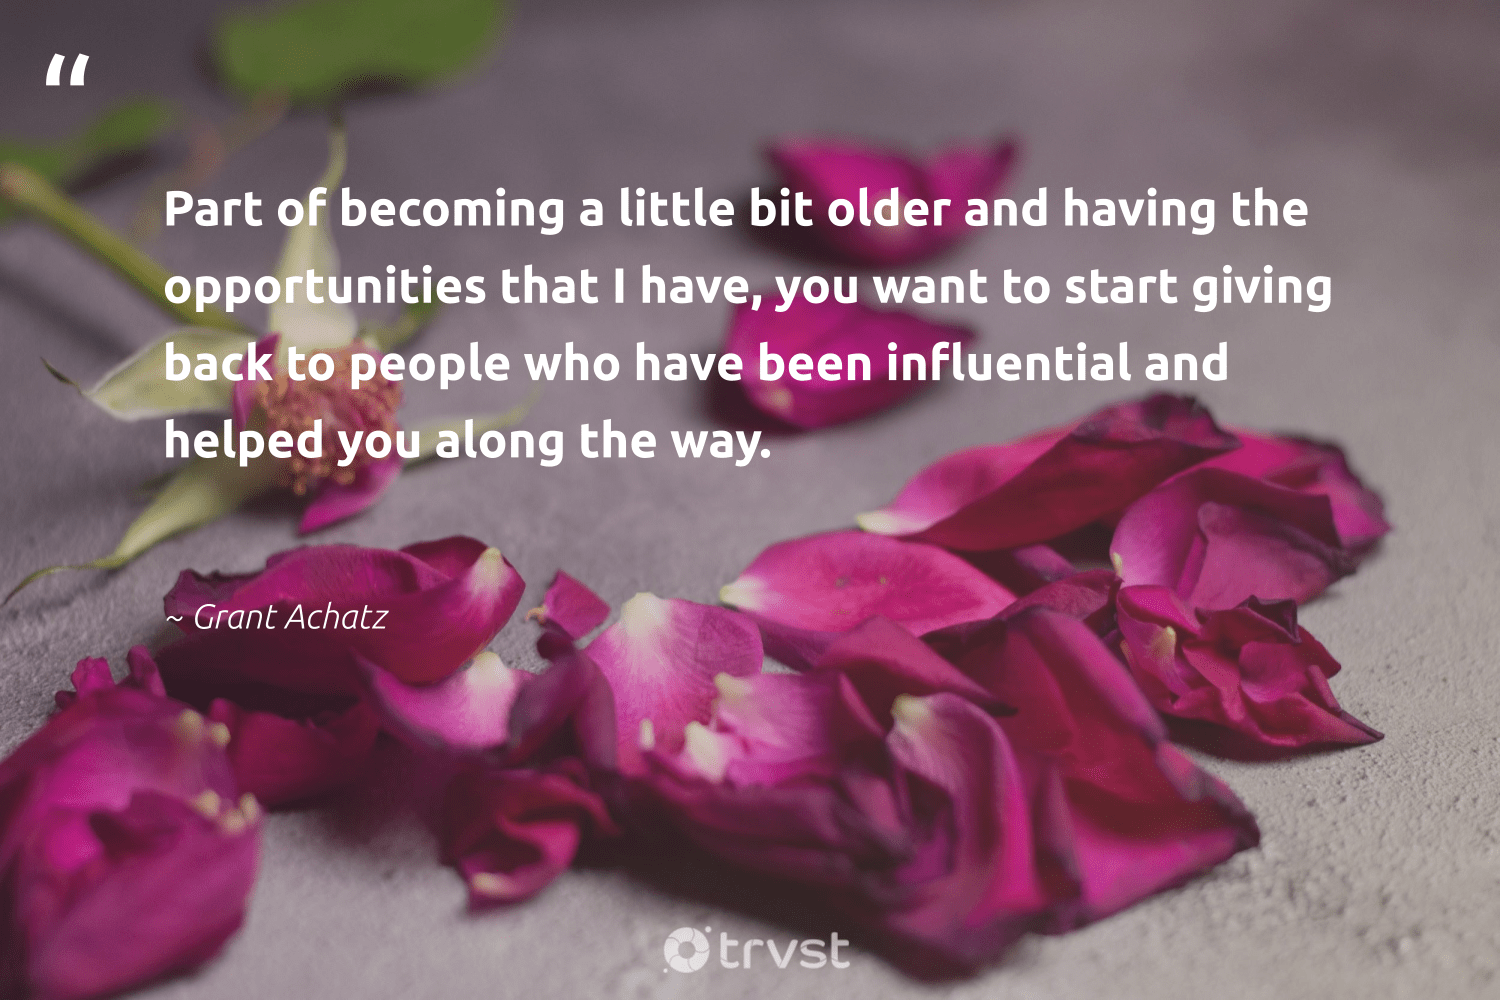 """""""Part of becoming a little bit older and having the opportunities that I have, you want to start giving back to people who have been influential and helped you along the way.""""  - Grant Achatz #trvst #quotes #givingback #giveback #dogood #giveforthefuture #togetherwecan #ecoconscious #socialgood #changemakers #itscooltobekind #bethechange"""